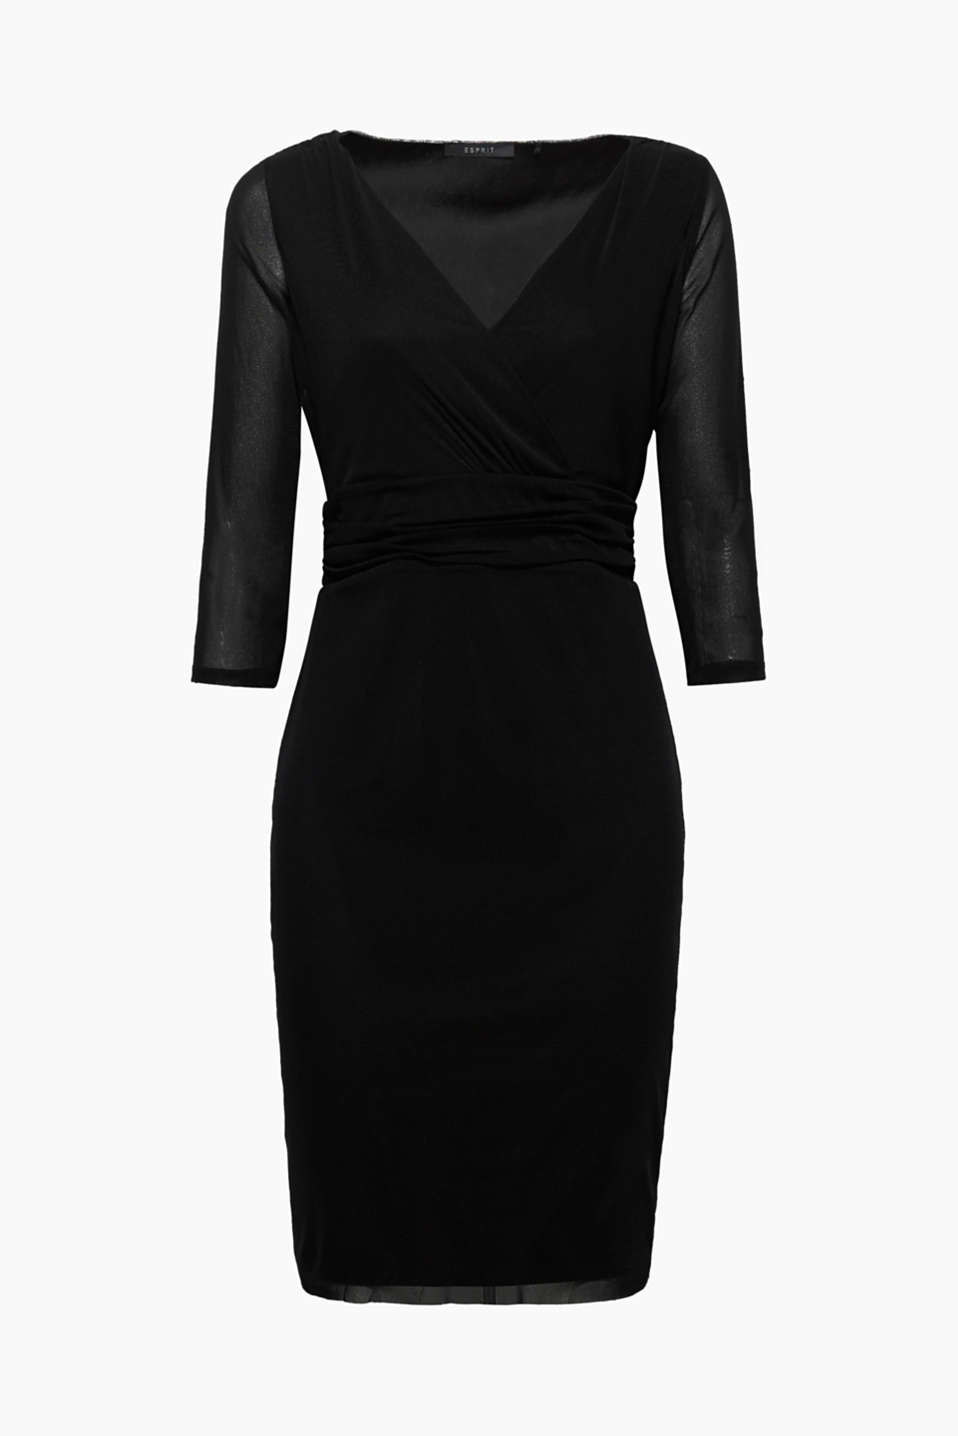 This mesh dress with a fixed wrap-over effect is lightweight, delicate and essential for special occasions!